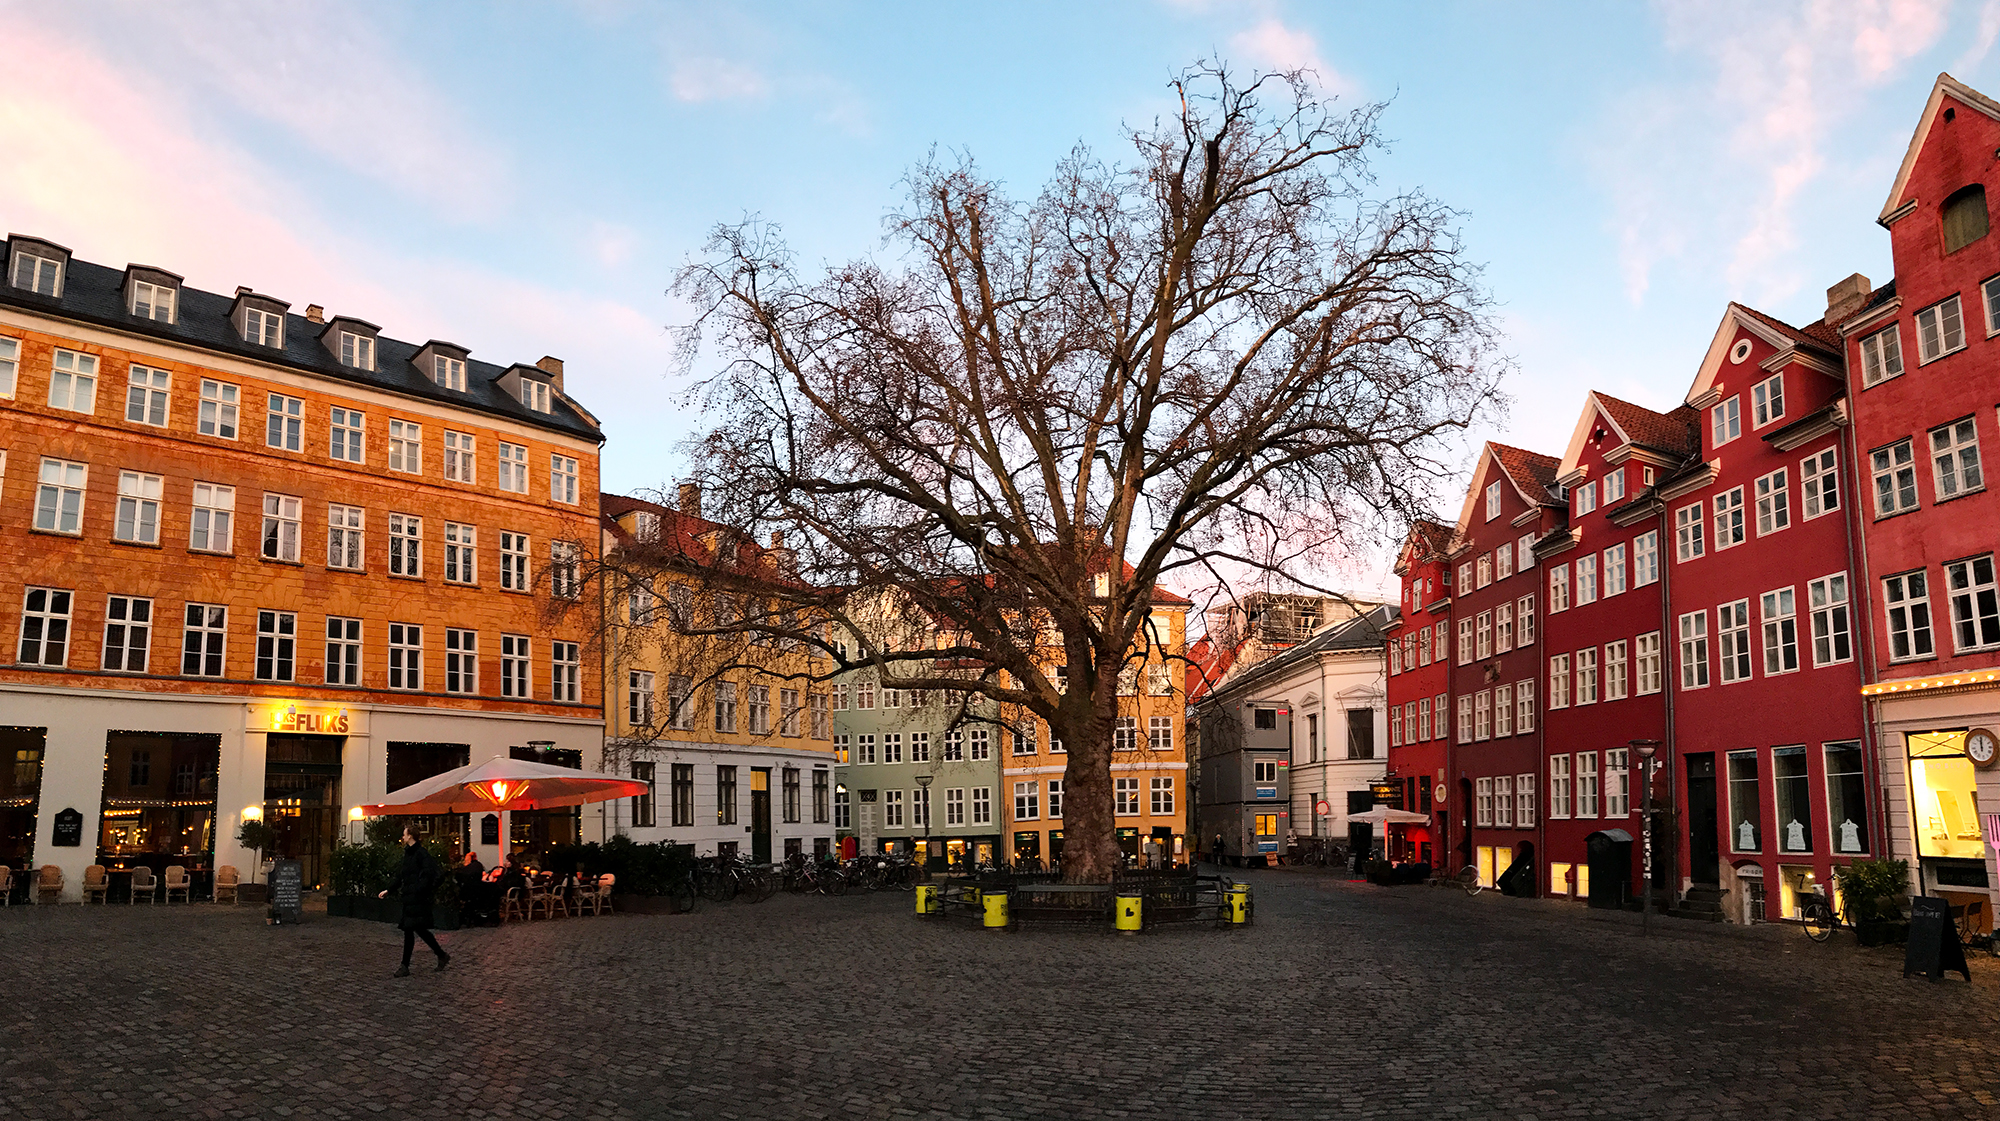 Nice cozy Danish Square in Copenhagen, Denmark.